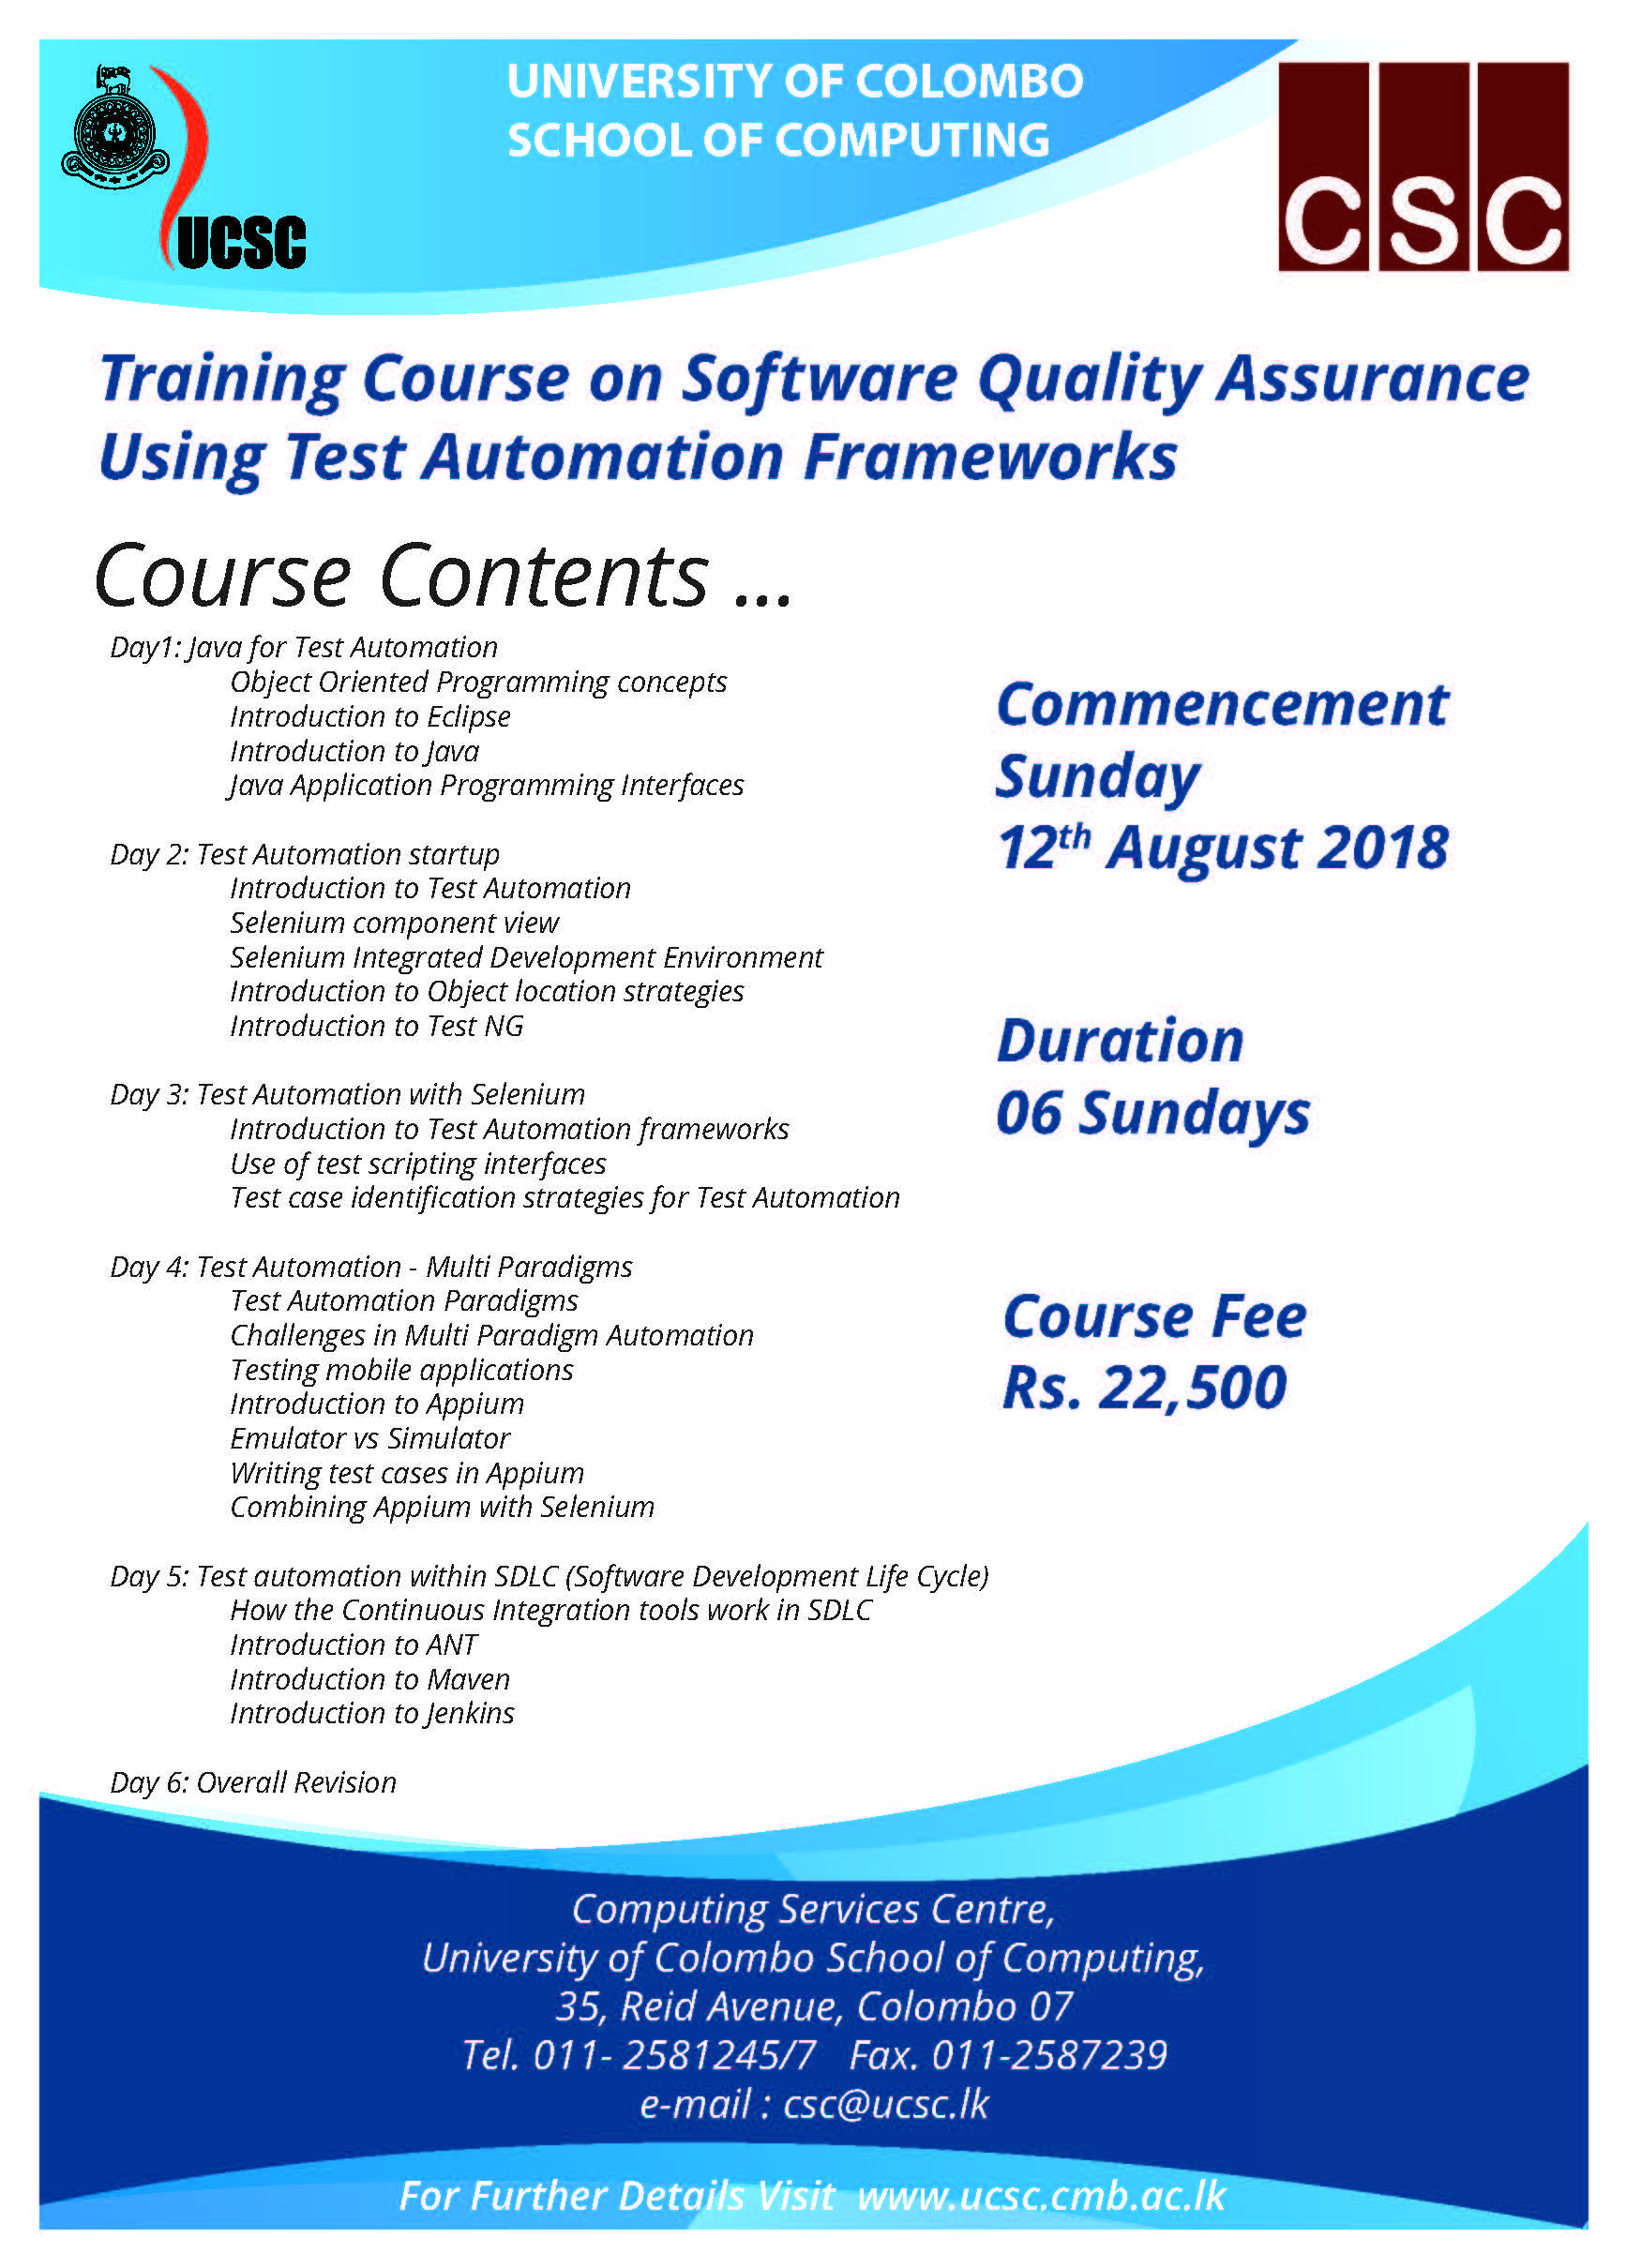 Training Course on Software Quality Assurance using Test